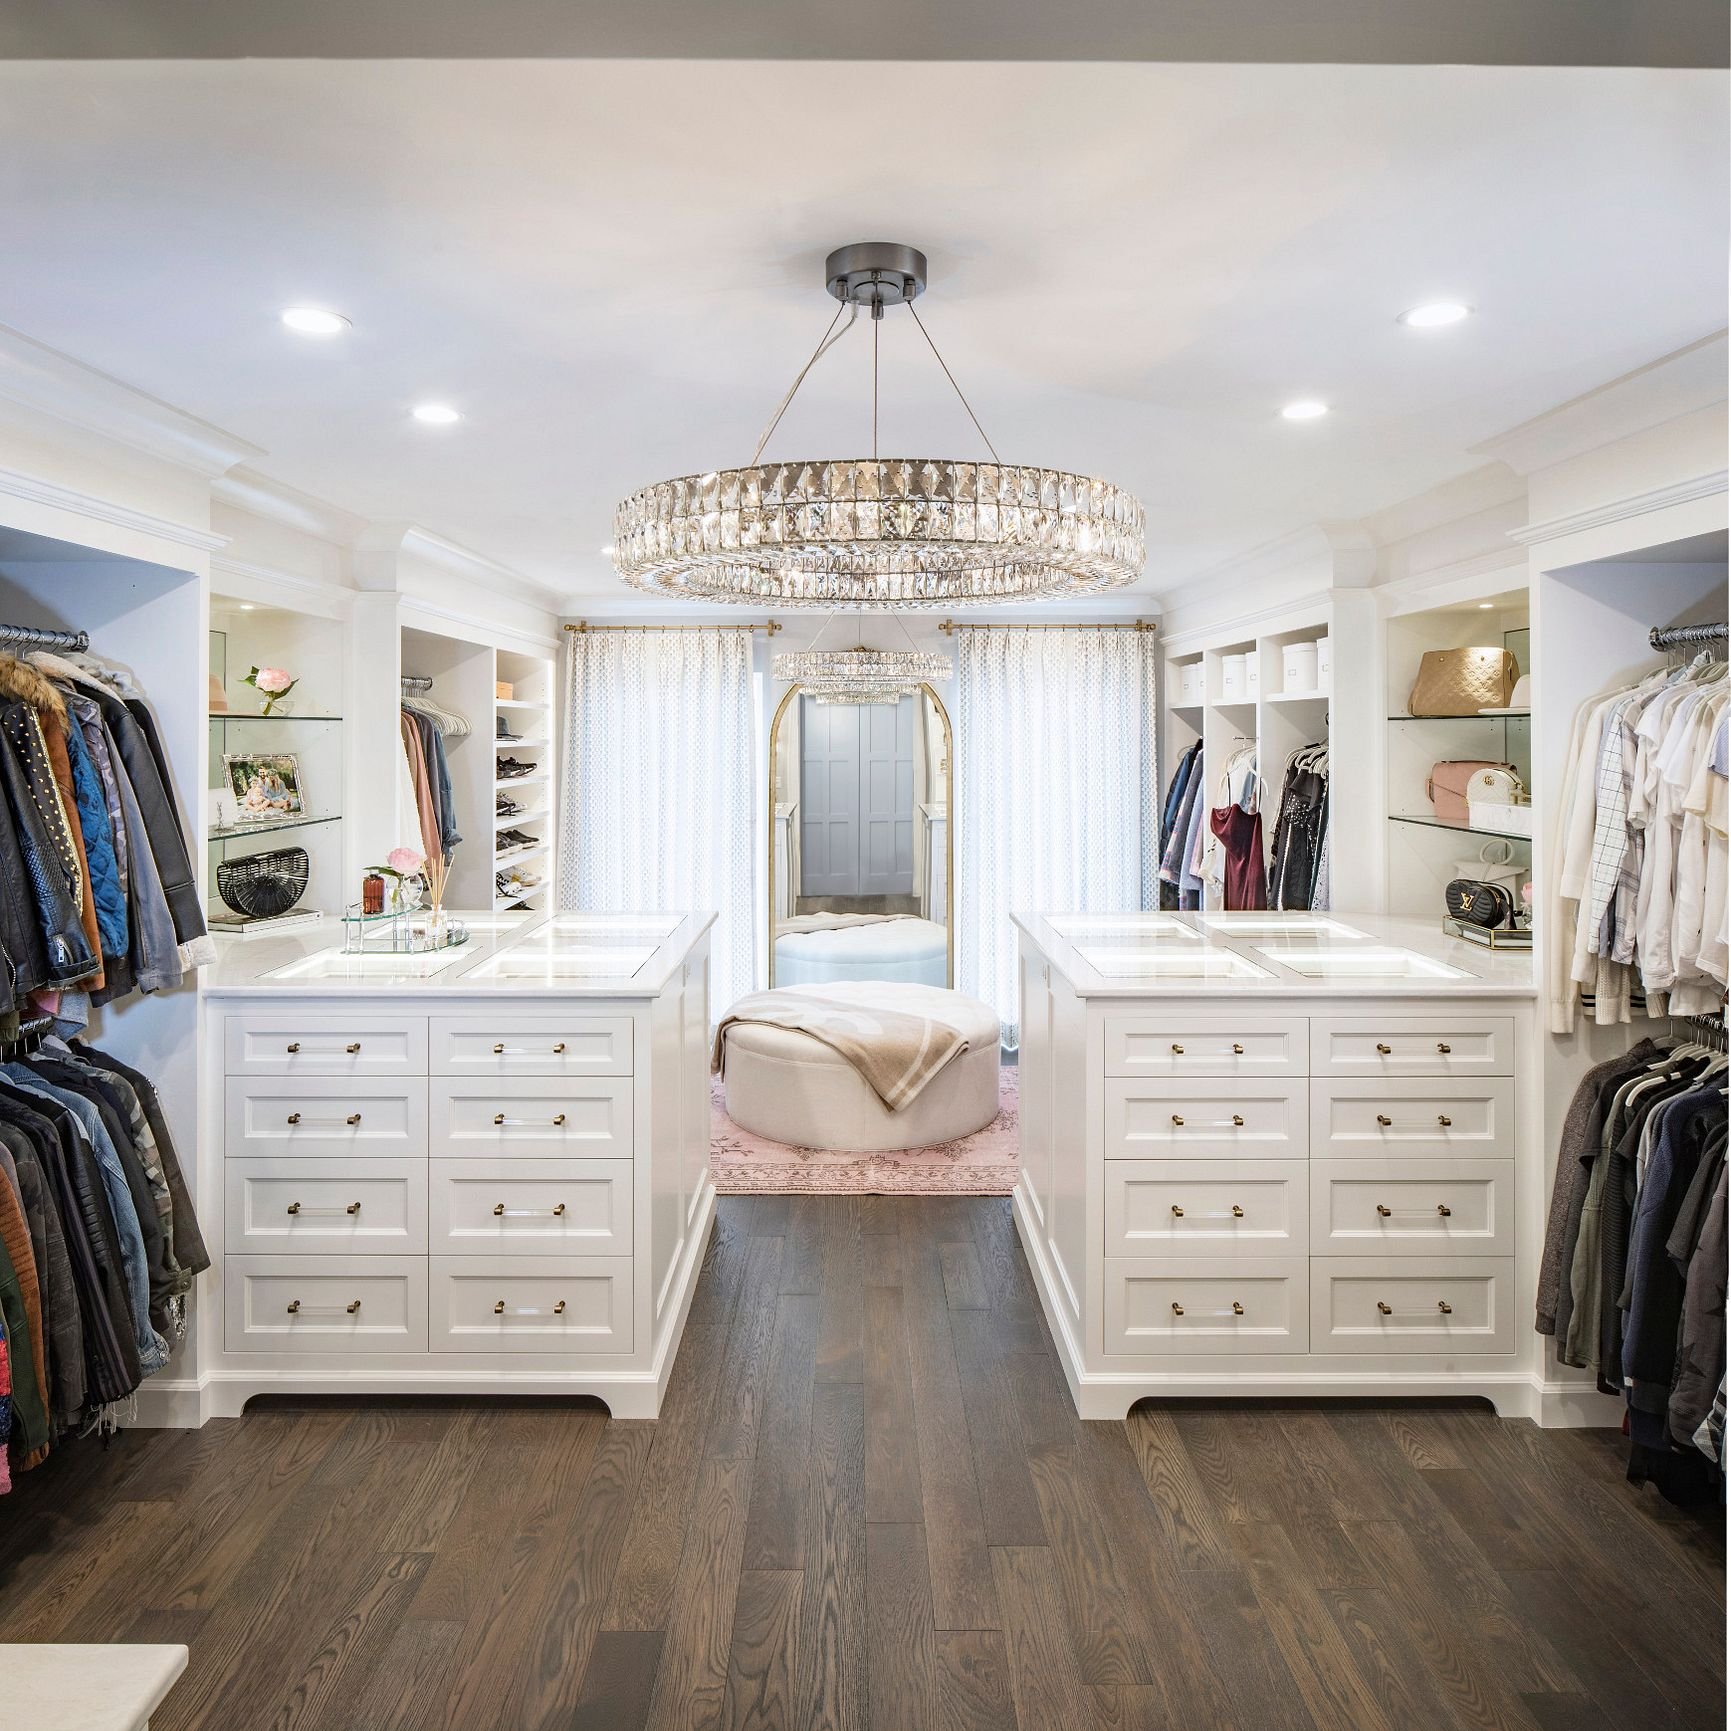 A full view of Carly Zucker's white closet featuring Cambria Delgatie on the island countertops.